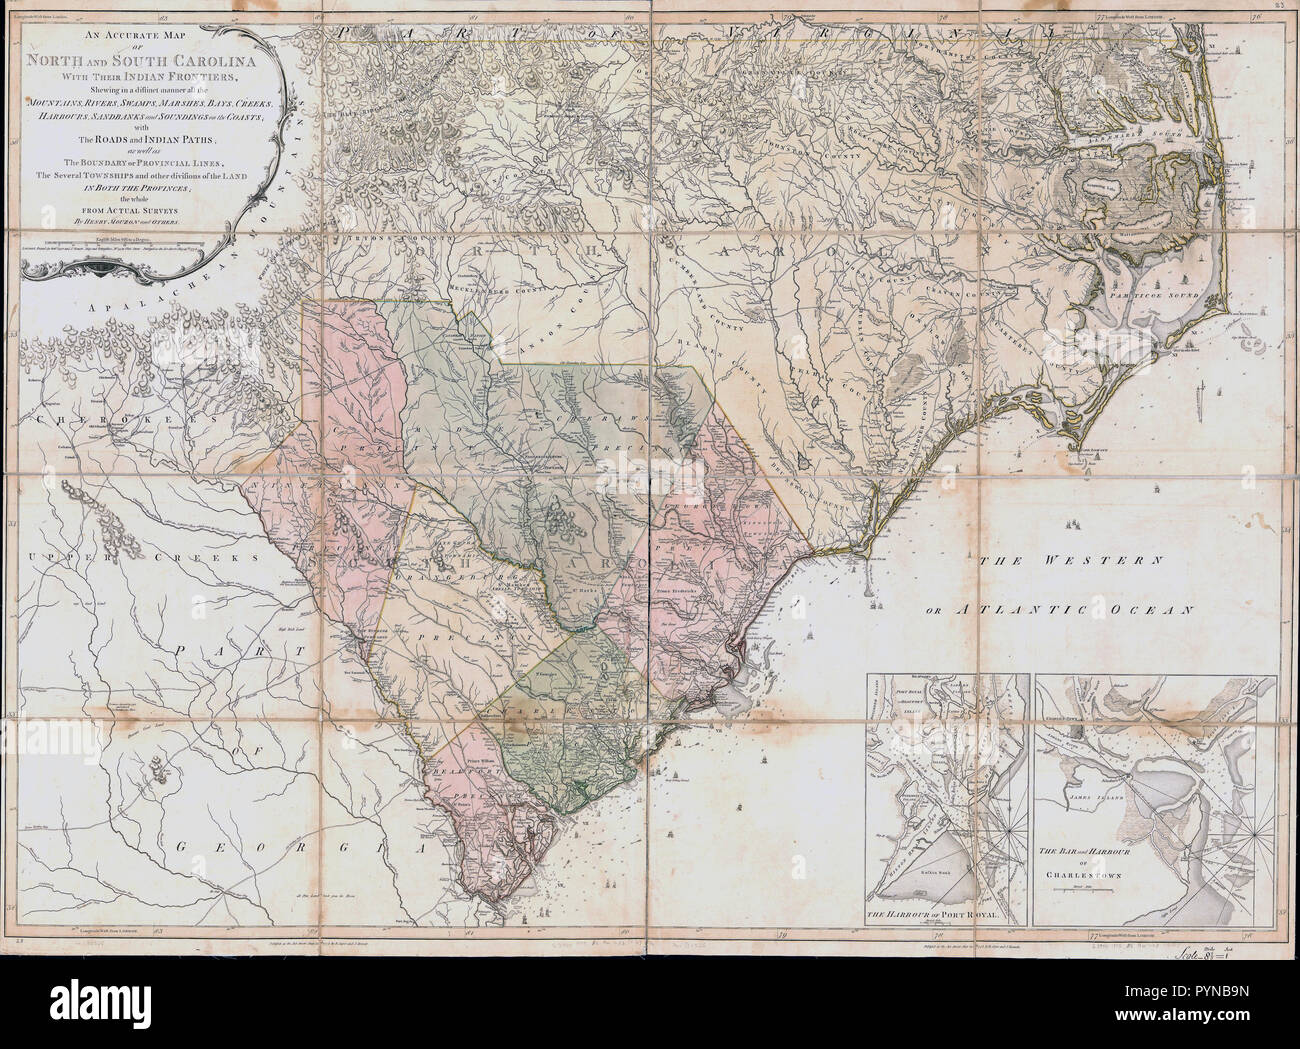 Vintage South Carolina Map.Vintage Maps Antique Maps An Accurate Map Of North And South